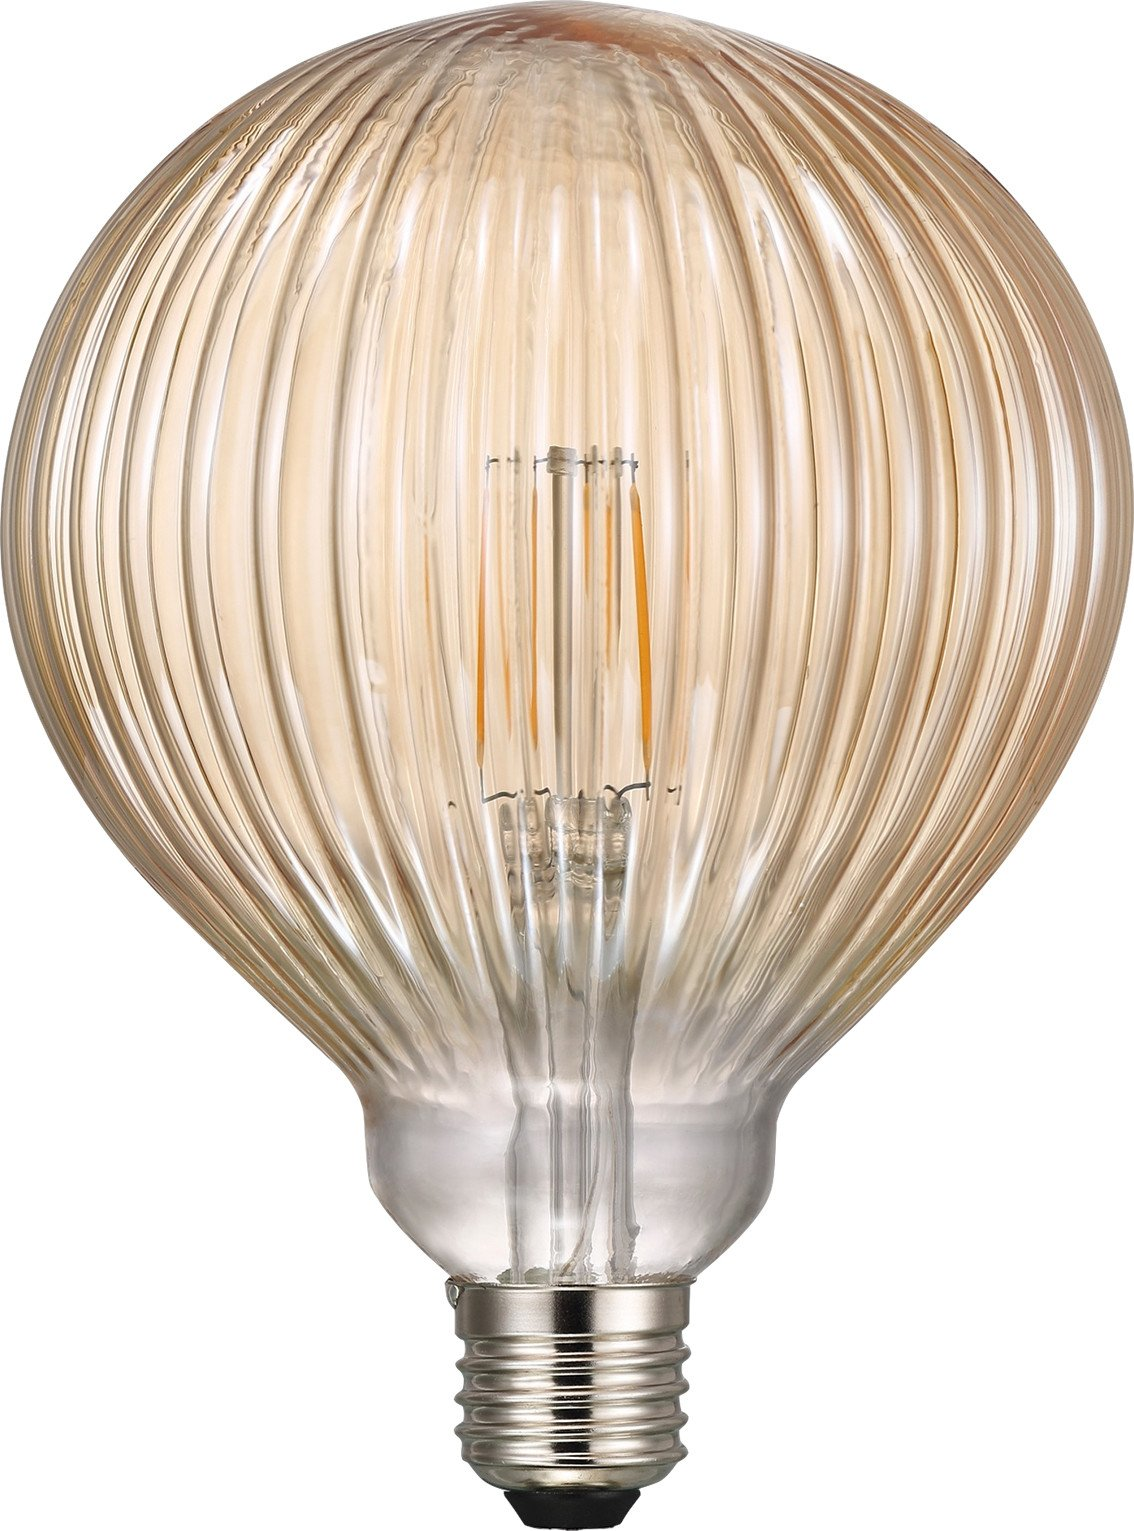 E27 Avra Basic Line Stripes 1,5W Light bulbs, Nordlux